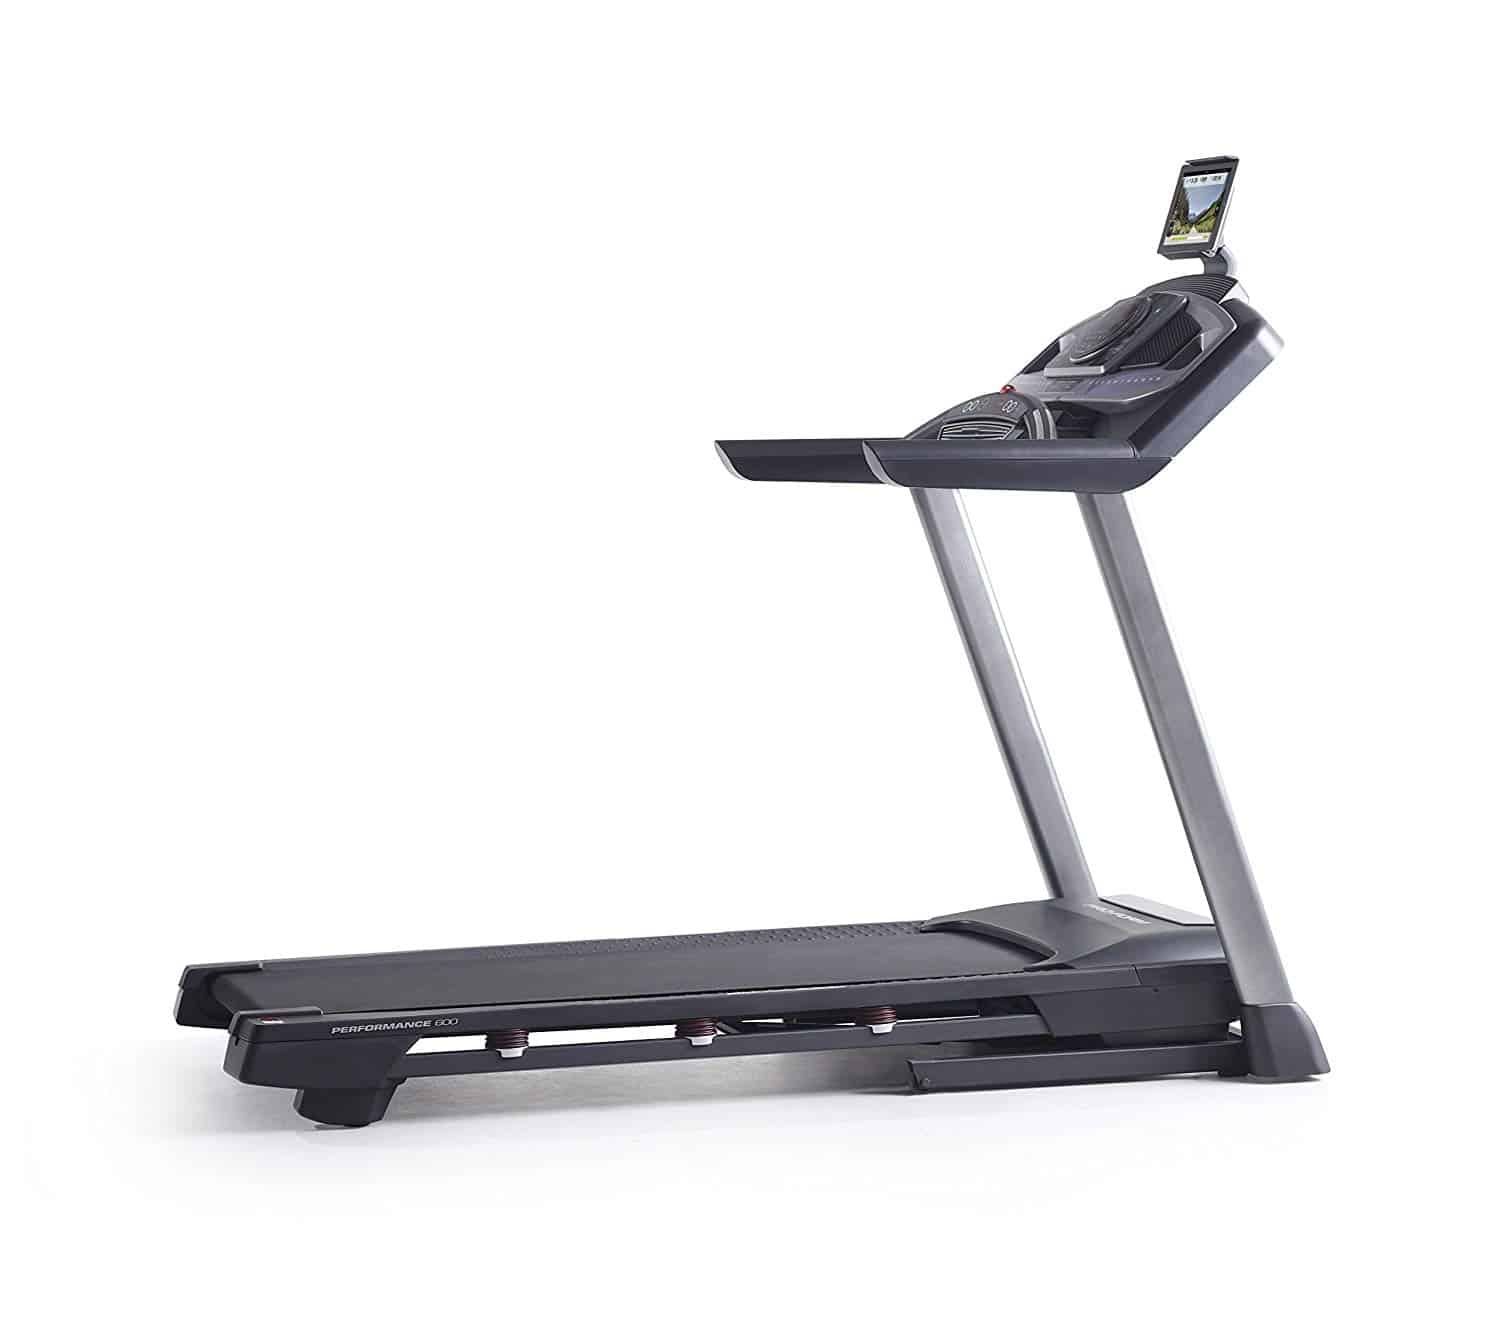 Horizon Fitness Treadmill Tighten Belt: Horizon Treadmill: Is It The Best Option For Your Home Gym?